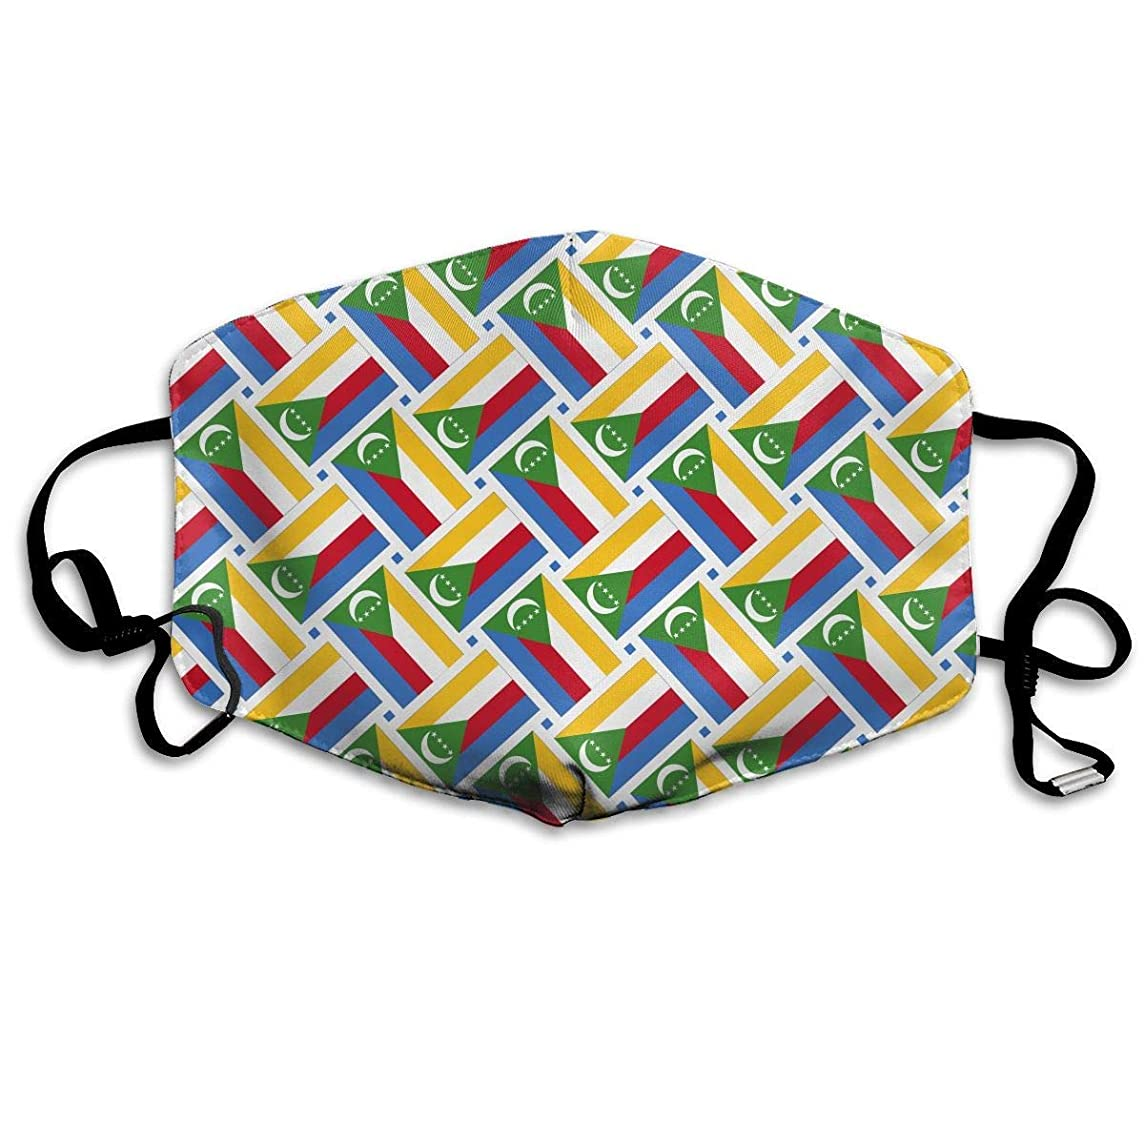 Comoros Flag Weave Mouth Mask,Dust,Face Mask Washed Reusable Activities Windproof 7 X 4.3 Inch.